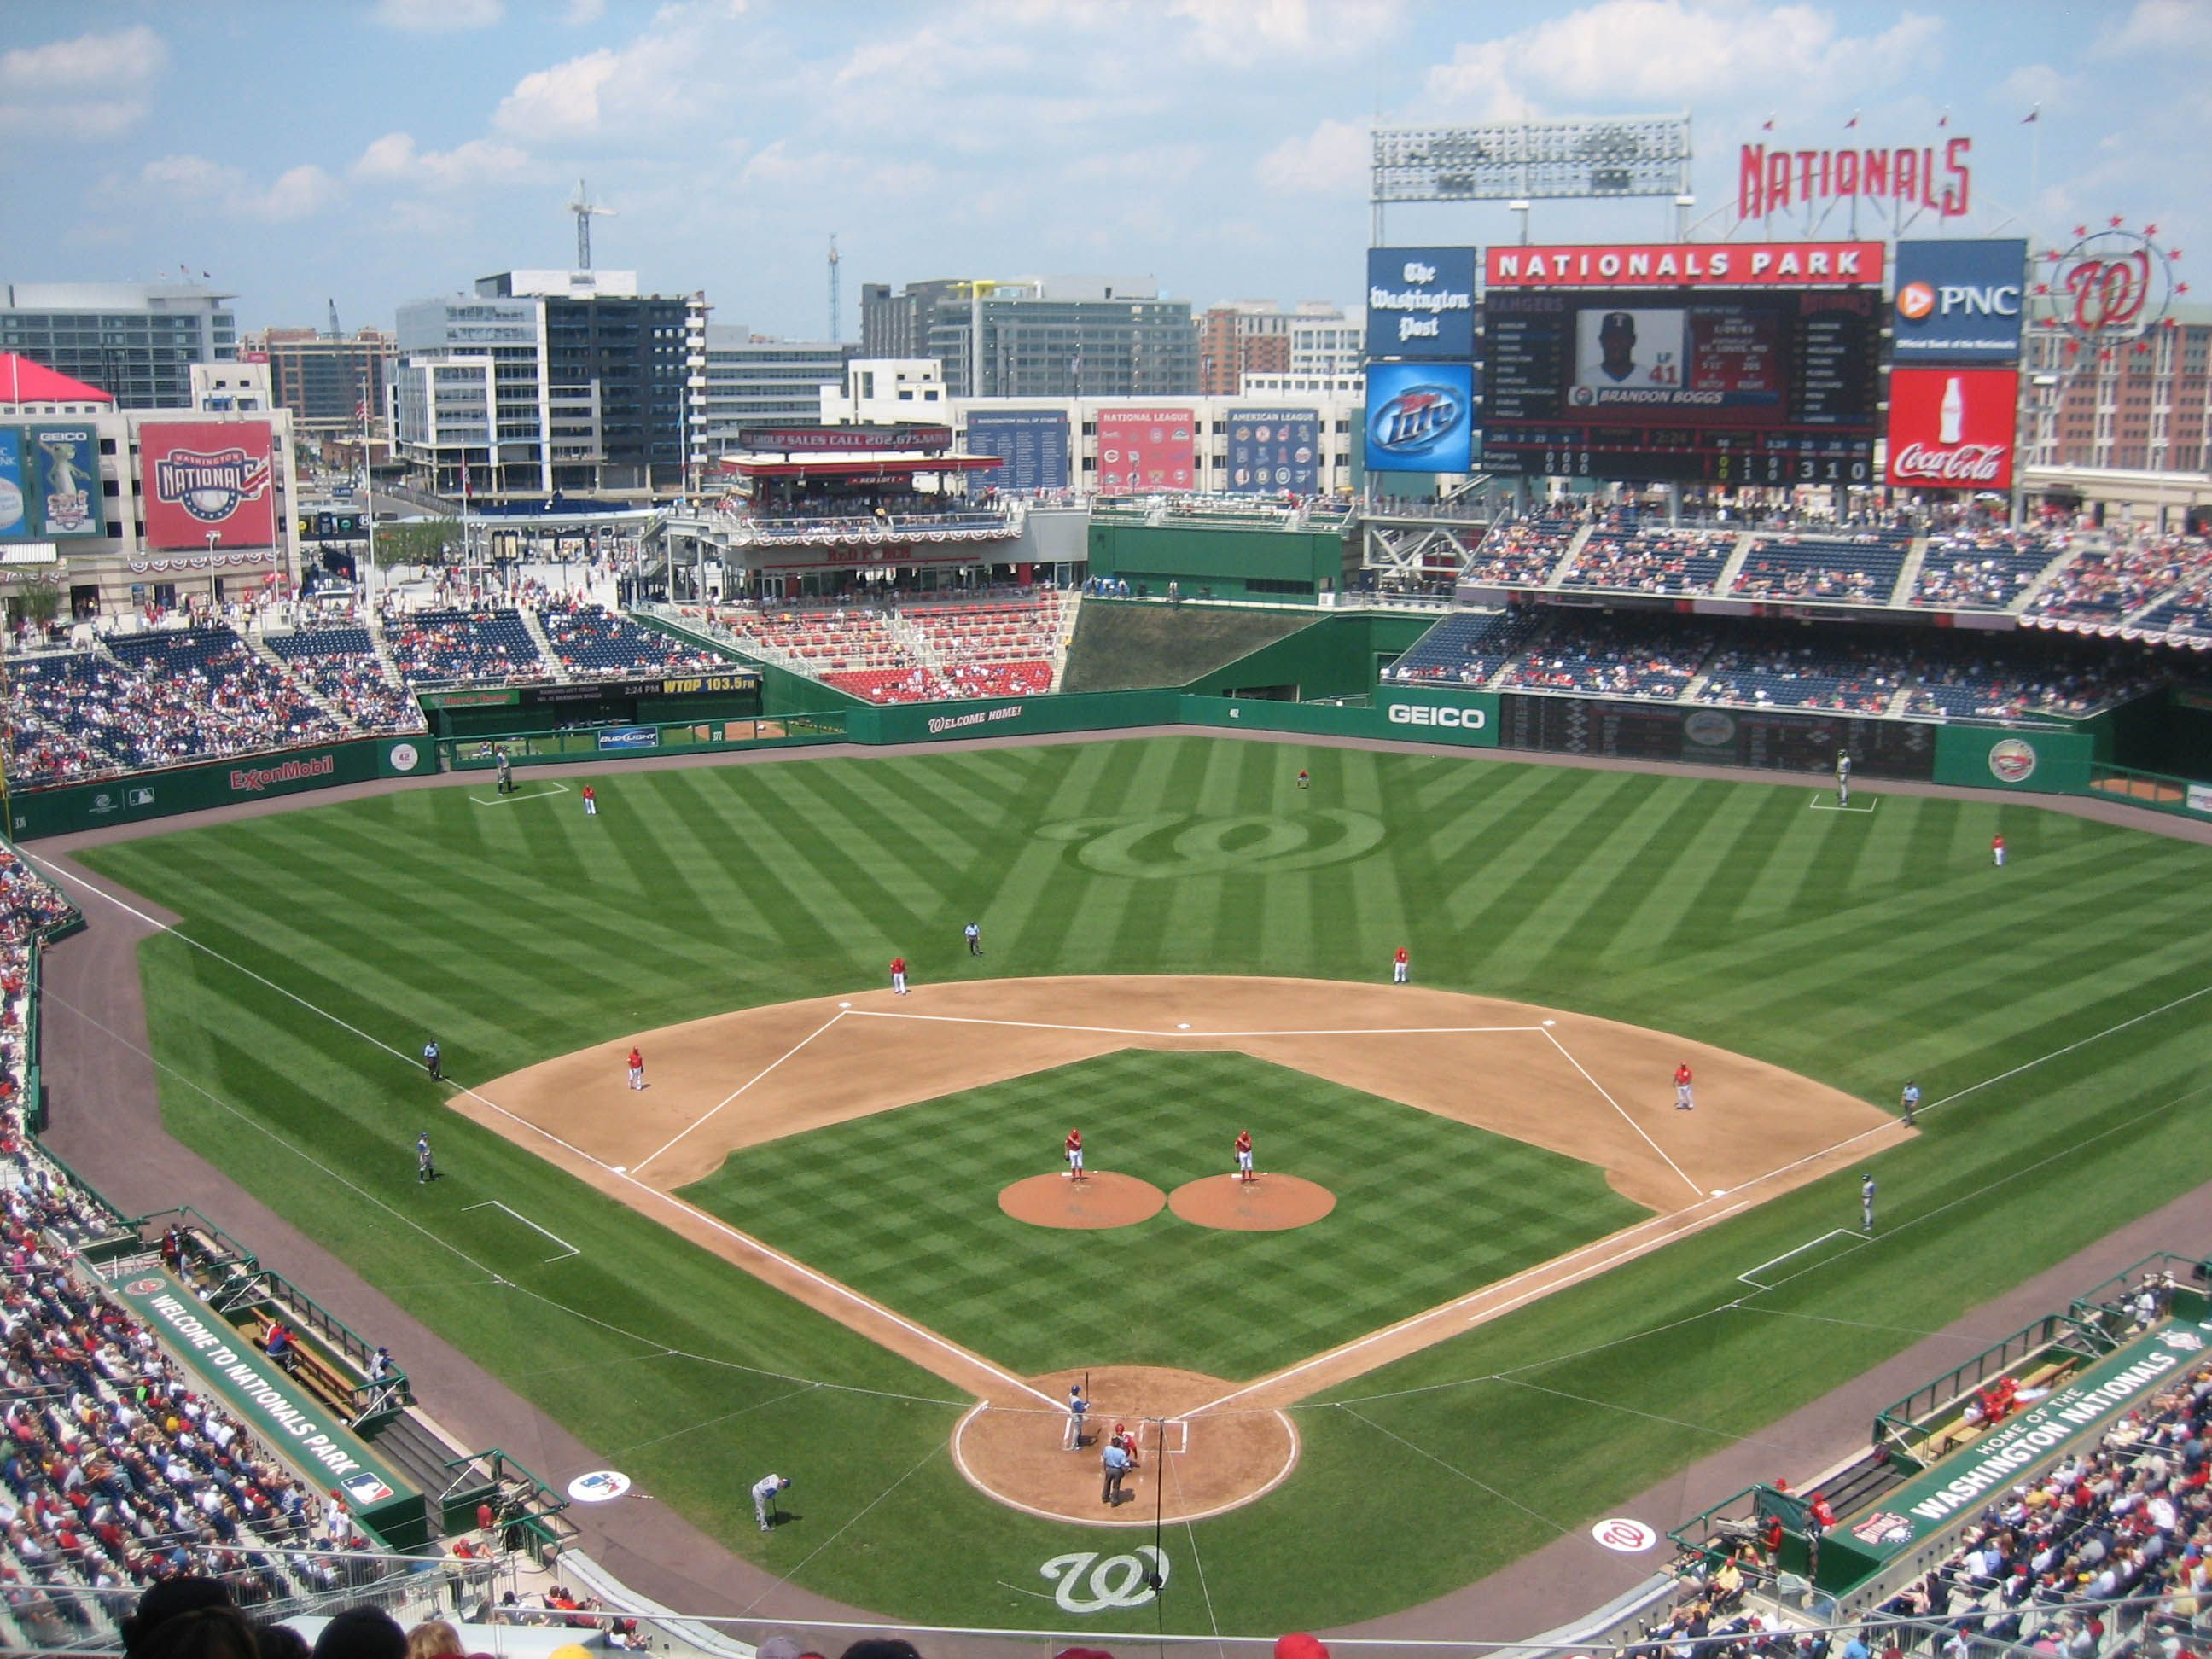 Mlbの球場貼っていくンゴ Mlb News なんj Nationals Park Baseball Stadiums Parks Baseball Stadium